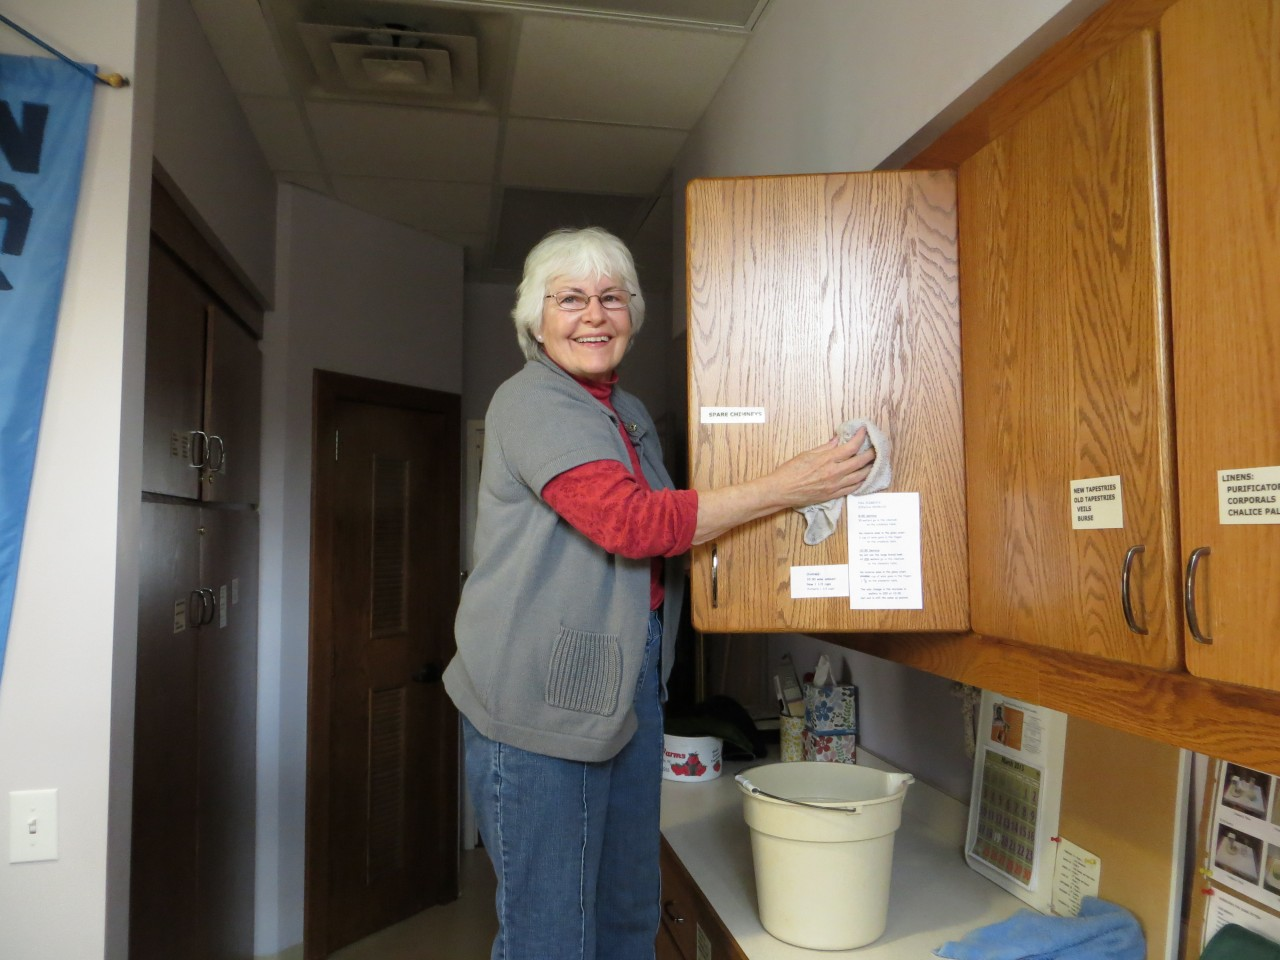 Altar Guild member Pat cleaning the cupboards